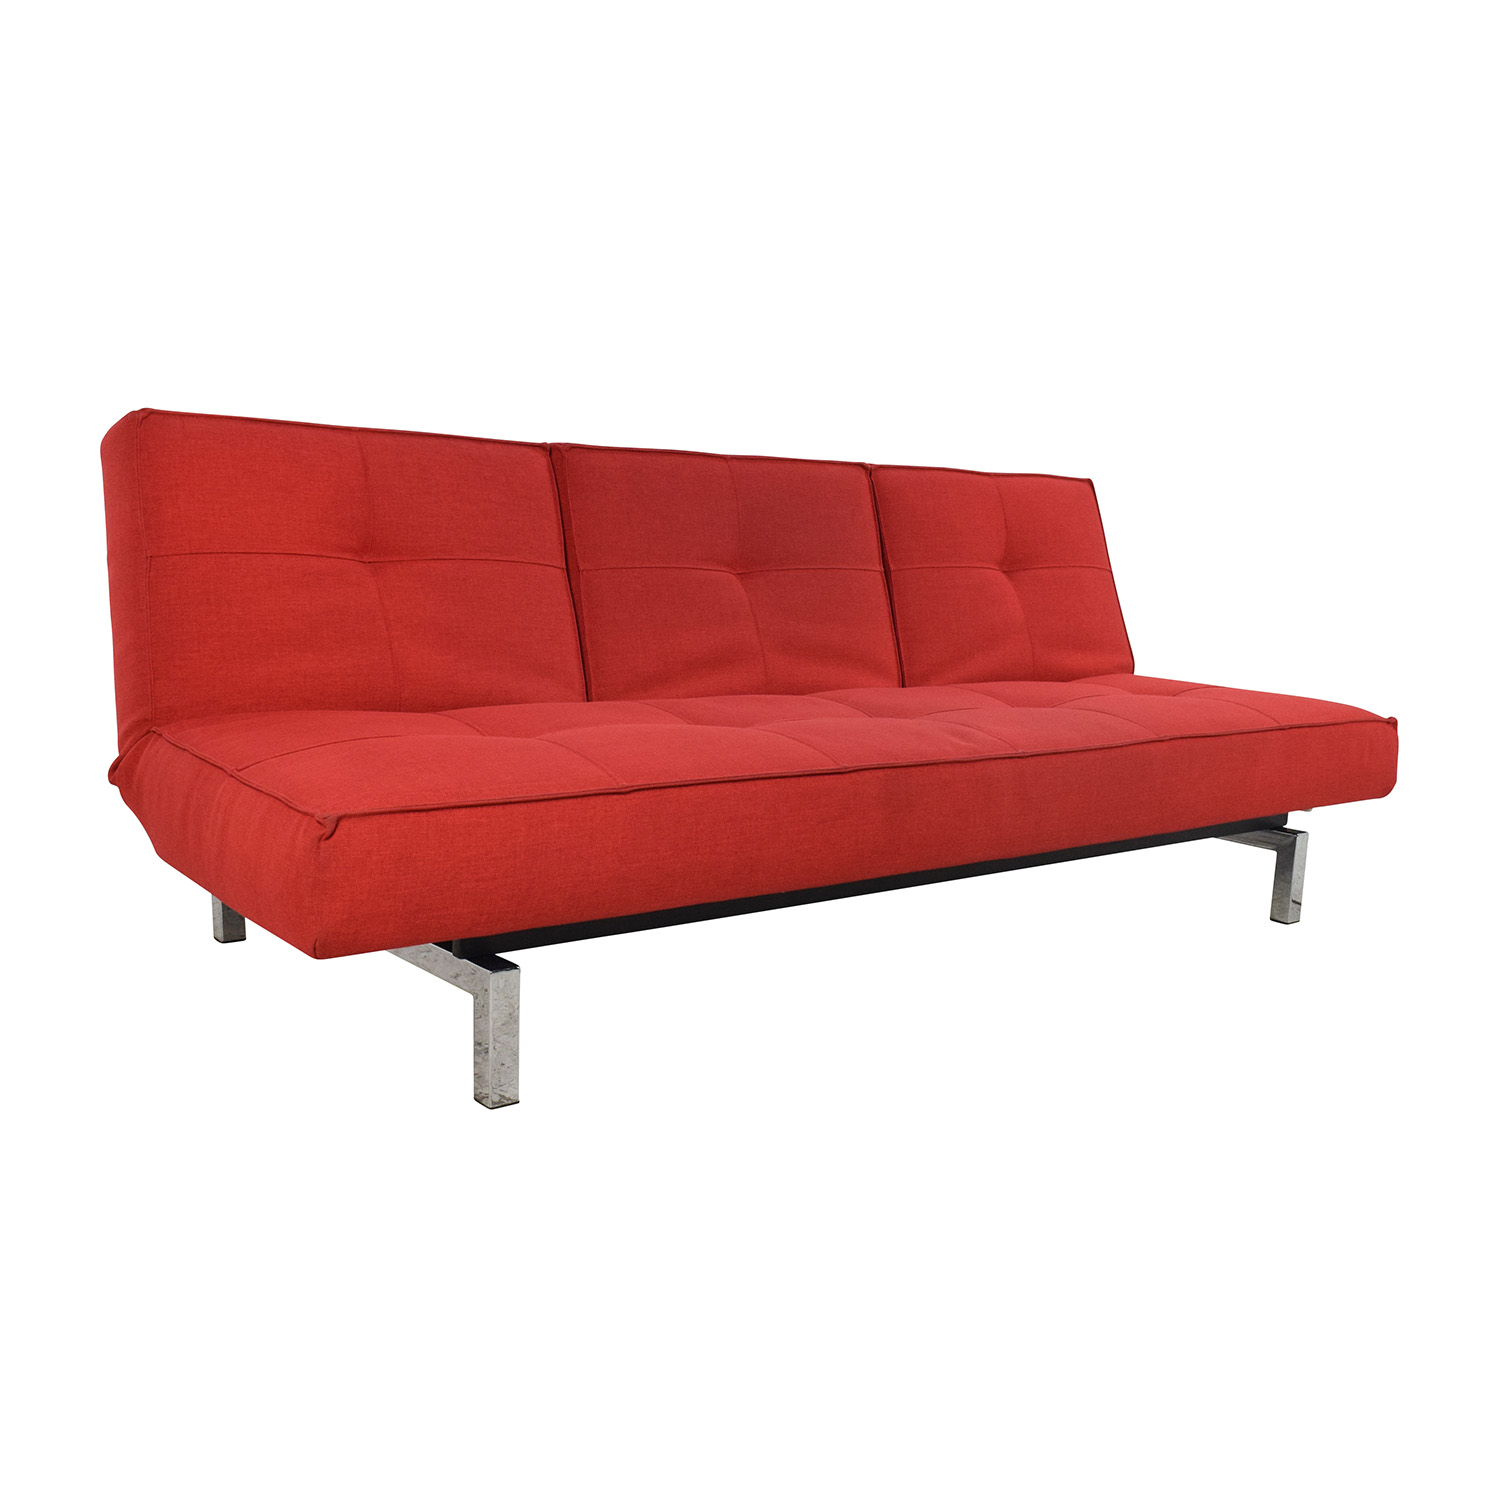 Room and Board Room & Board Eden Convertible Red Sofa for sale